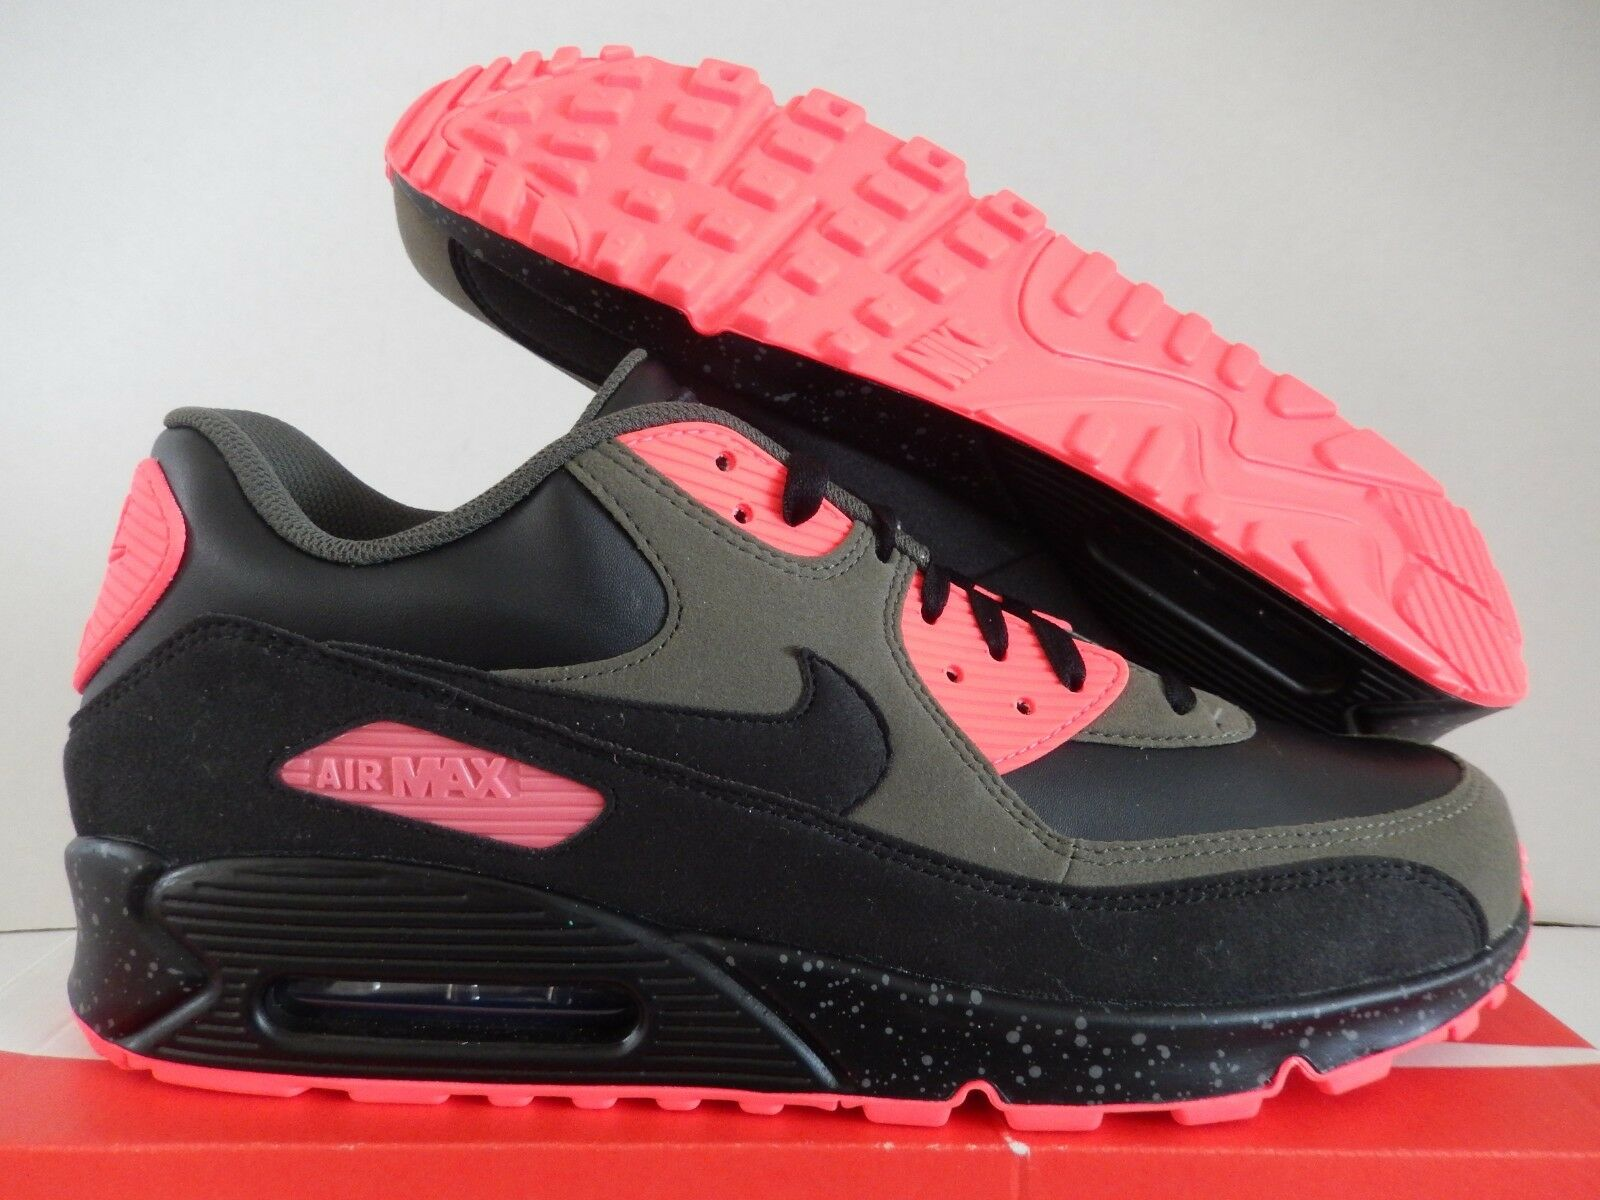 nike air max 90 id [931902-993] black-olive green-infrared sz 12,5 [931902-993] id 11d5cf